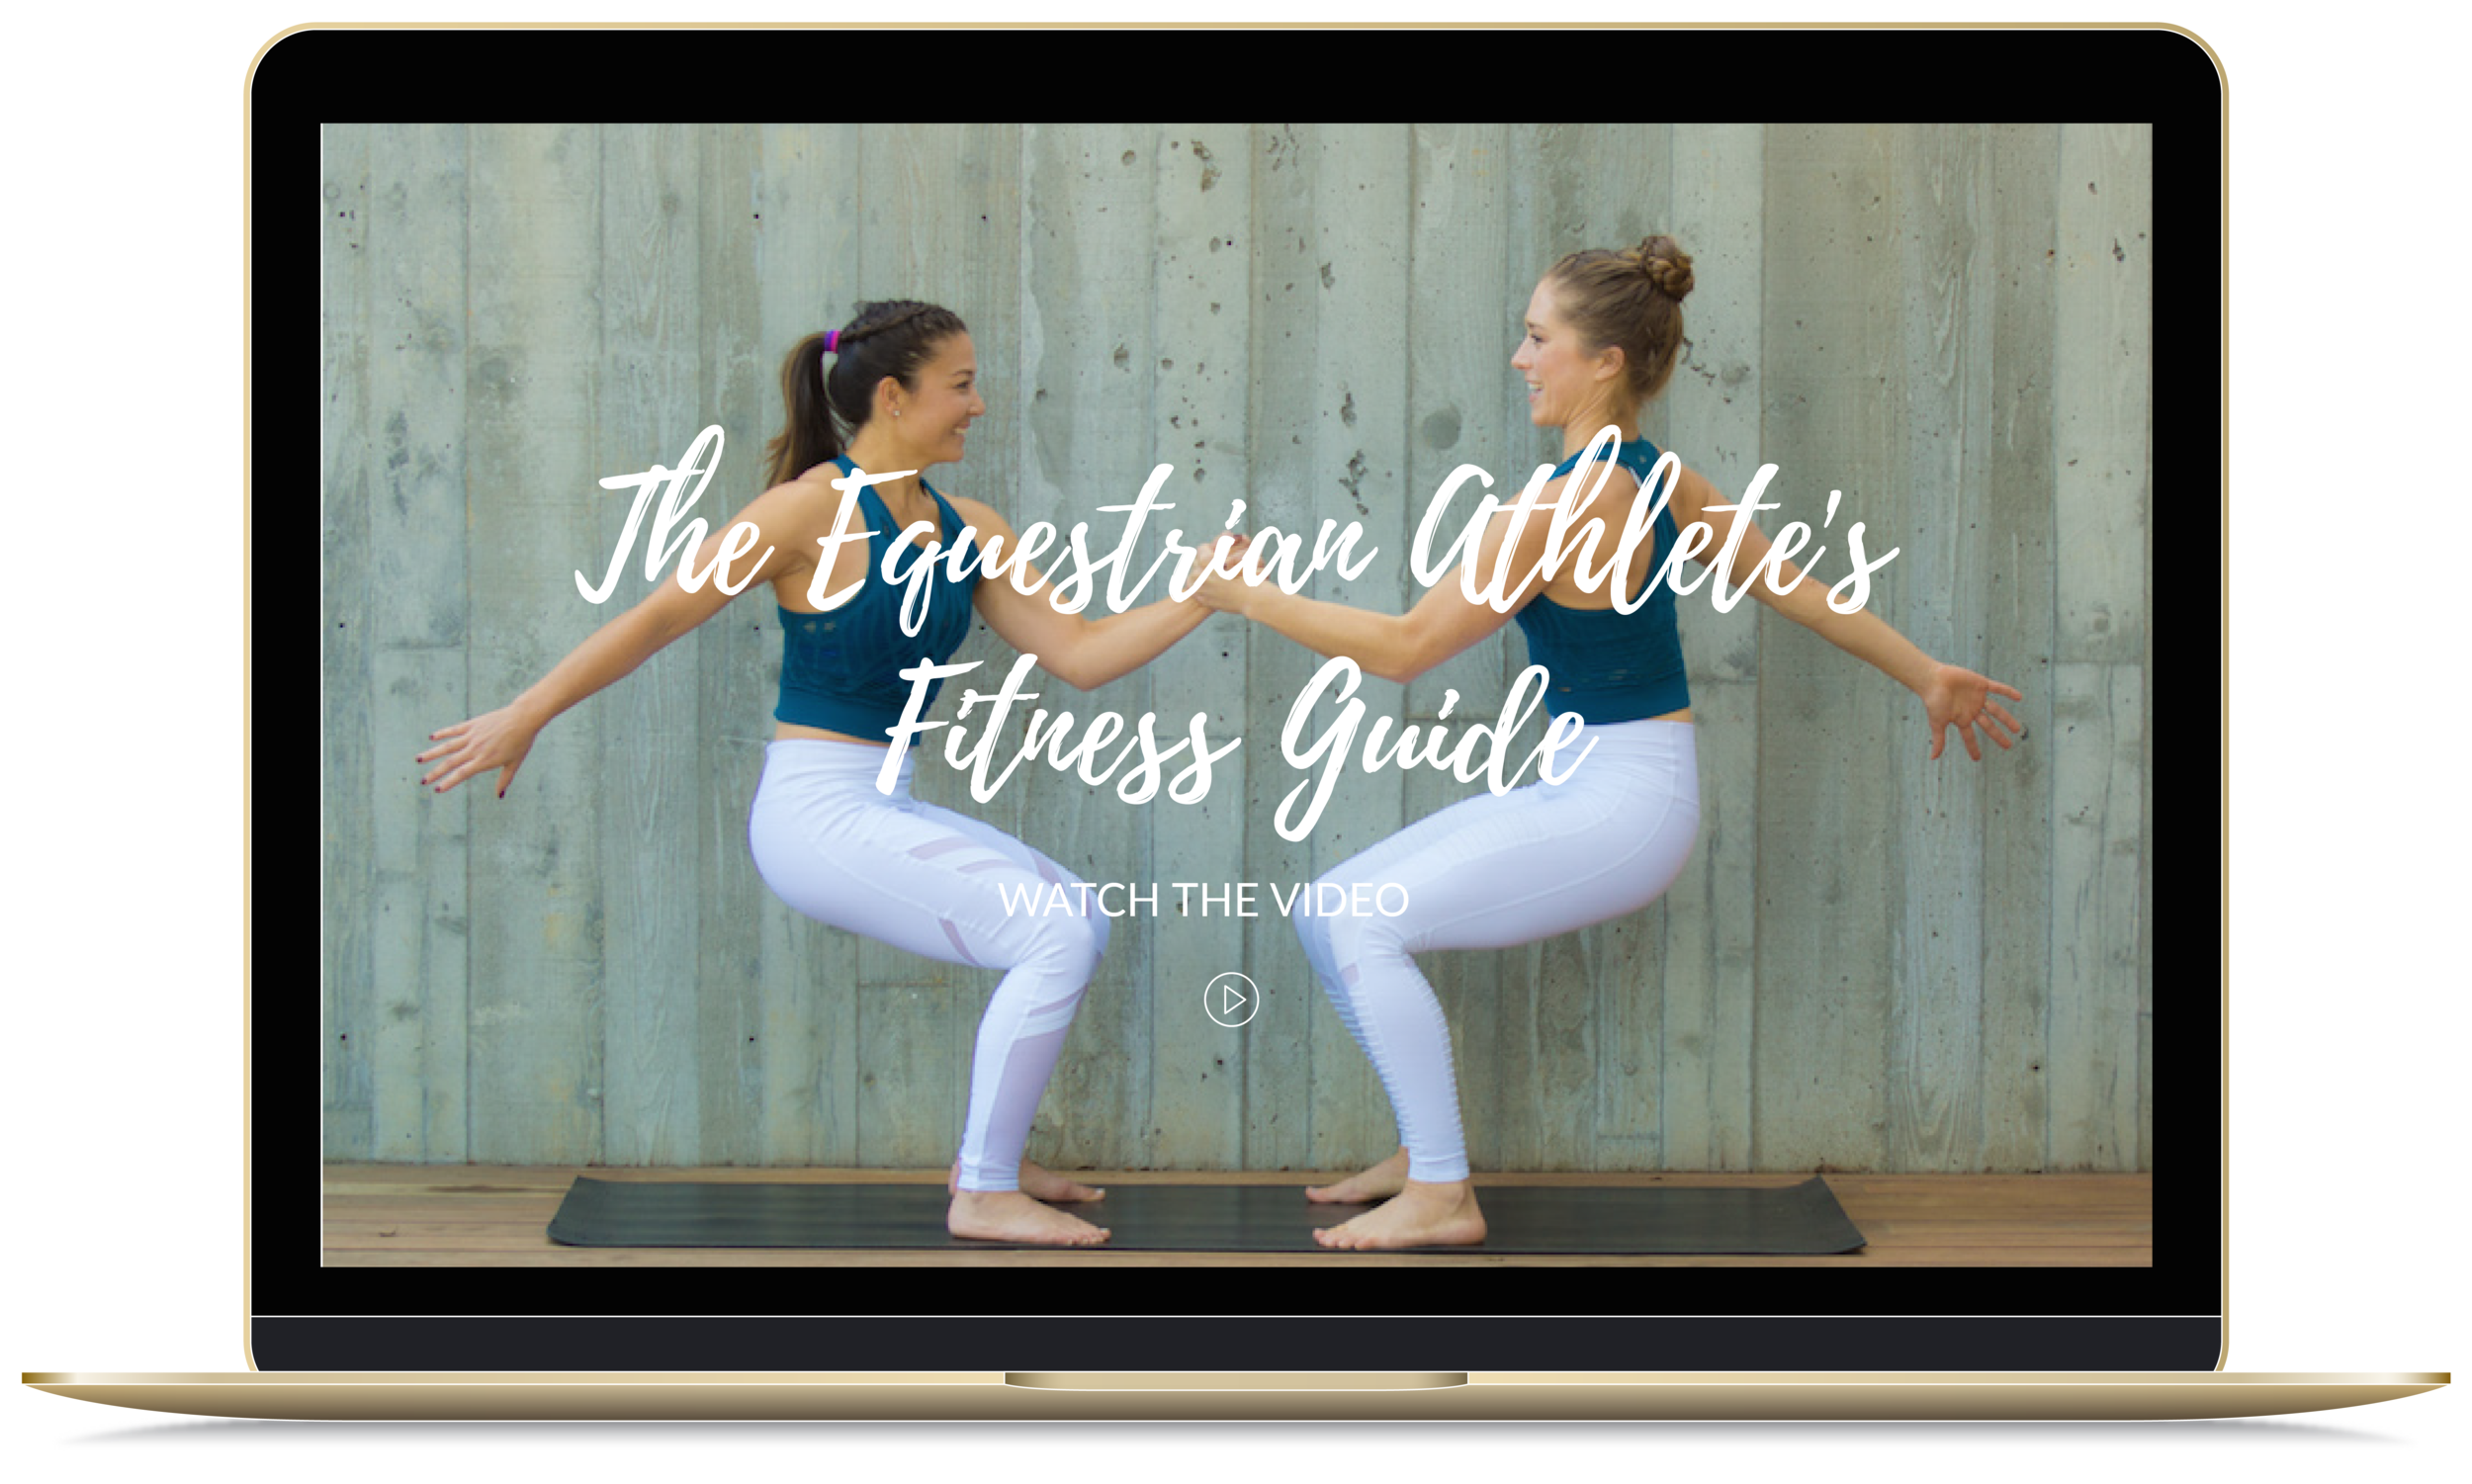 The Eq Athletes fitness guide - watch the video.png